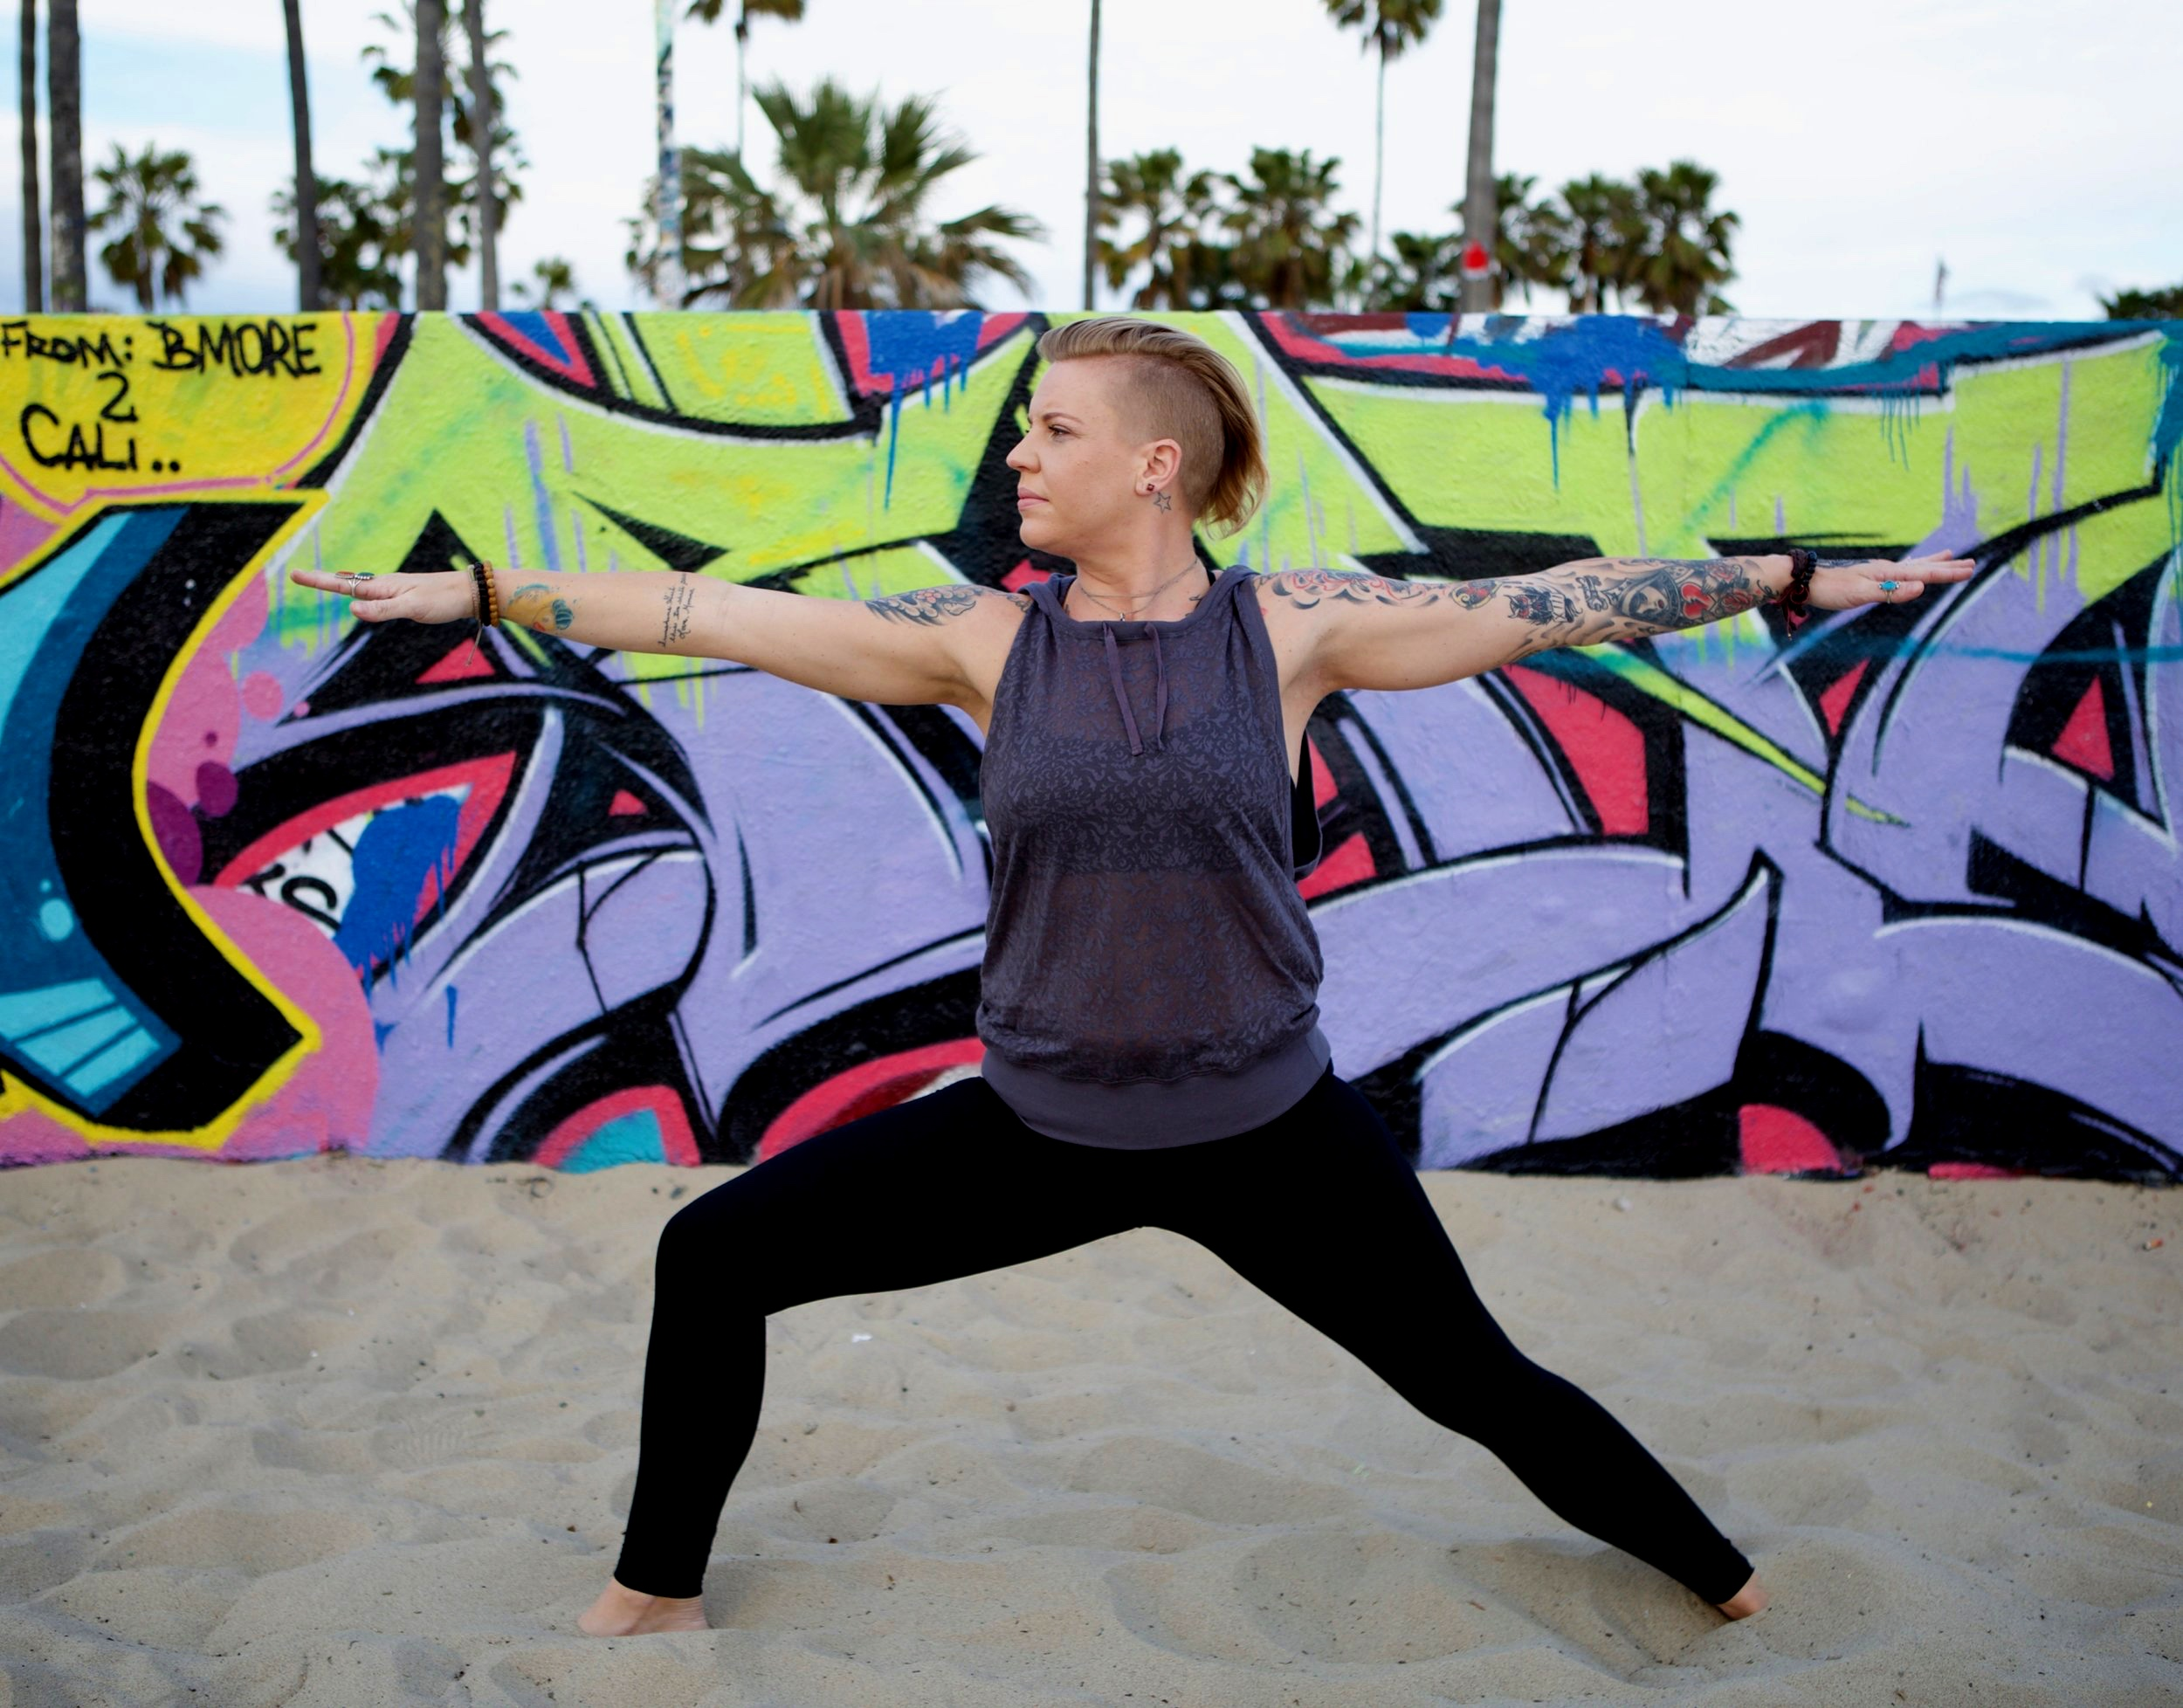 Brandee Hewlett - Brandee has experienced a deep transformation because of a steady and faithful yoga practice. Additionally, she has used cannabis in her personal yoga practice for years. Her passion is to share these practices with others to show that cannabis-enhanced yoga helps us to become fully present and aware of the subtle sensations of the body.Brandee began her yoga profession in India, where she acquired her 200 hour certificate. It was Mother India that taught her the importance of listening to your body and allowing the breath to guide you through a compassionate practice. Since India, she has continued her education by completing a 50 hour Yin/Restorative training under Govind Das of Bhakti Yoga Shala in Santa Monica, California, a 50 hour Ganja Yoga teacher training with founder and author of Ganja Yoga, Dee Dussault, as well as a trauma informed training led by Gemini Adams.Brandee's classes take you on a journey using pranayama, meditation, and asana, linked with a ritualistic cannabis experience. She welcomes all levels of experience (yoga + cannabis) into her classes. Let the practice meet you where you are.BHAVA NA SANA HRIDAYAMMay this cannabis be a blessing to my heart.